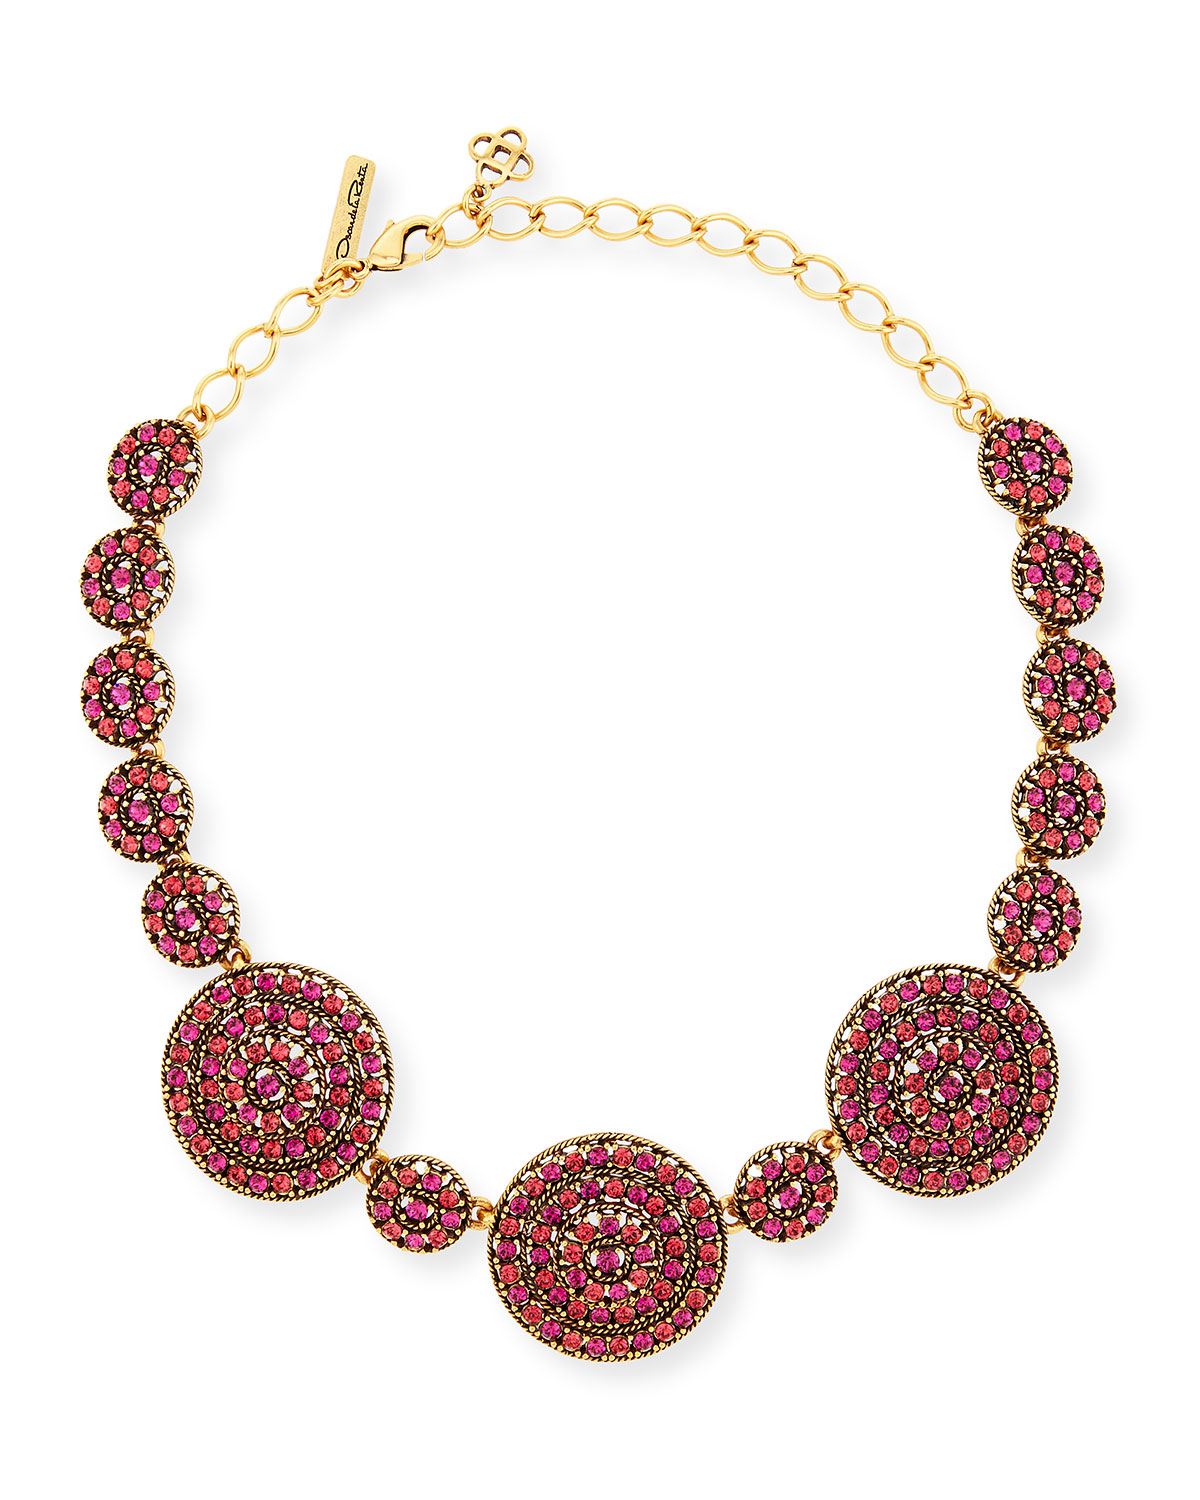 Oscar de la Renta Crystal Disc Statement Necklace, Pink